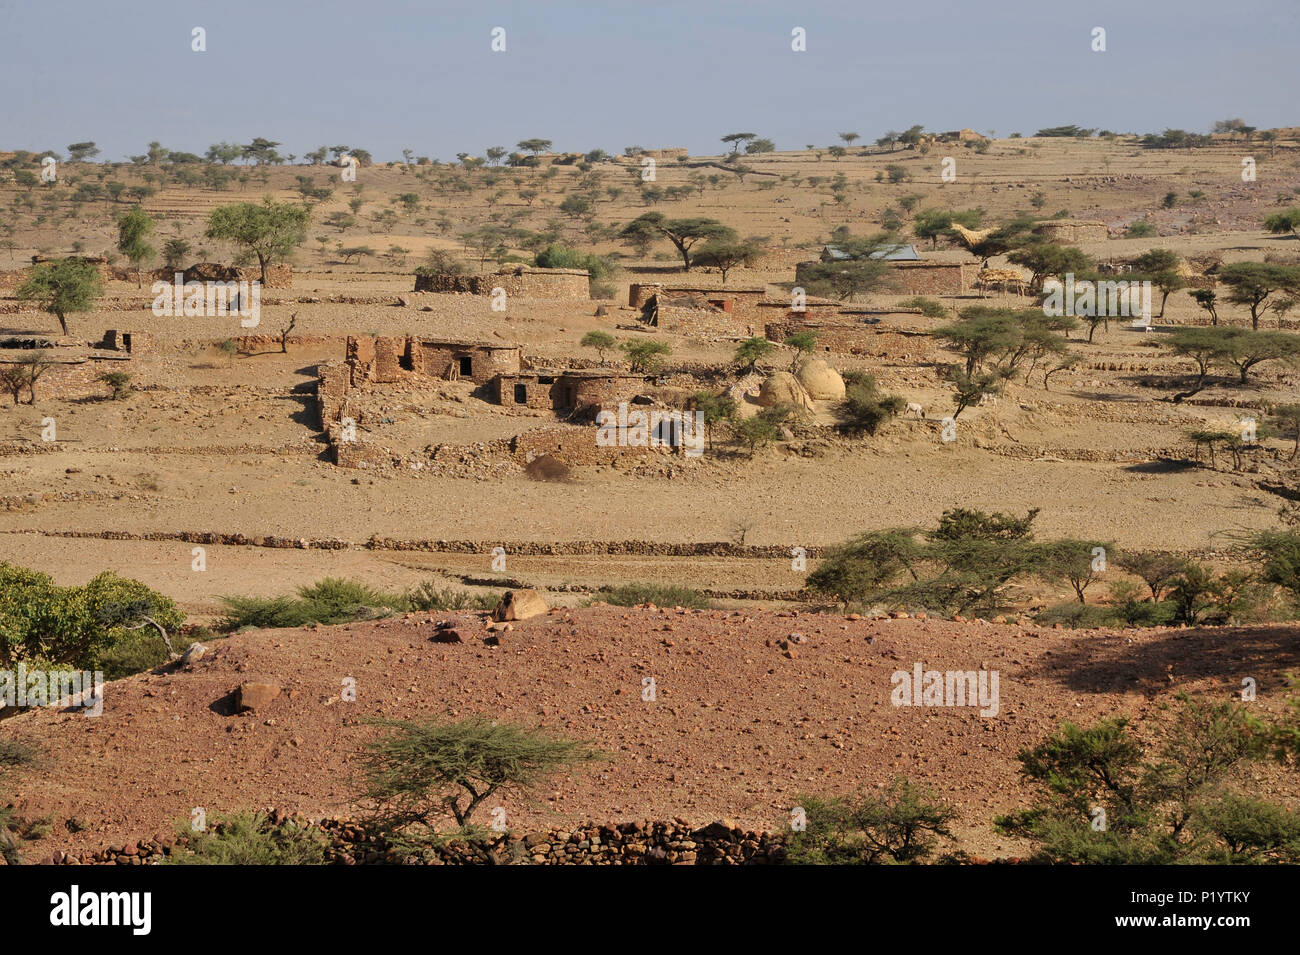 Ethiopia, Tigray area, Gheralta mountains, Hawzen, typical arid landscape from the north of Ethiopia with its low stone houses surrounded by acacia trees - Stock Image